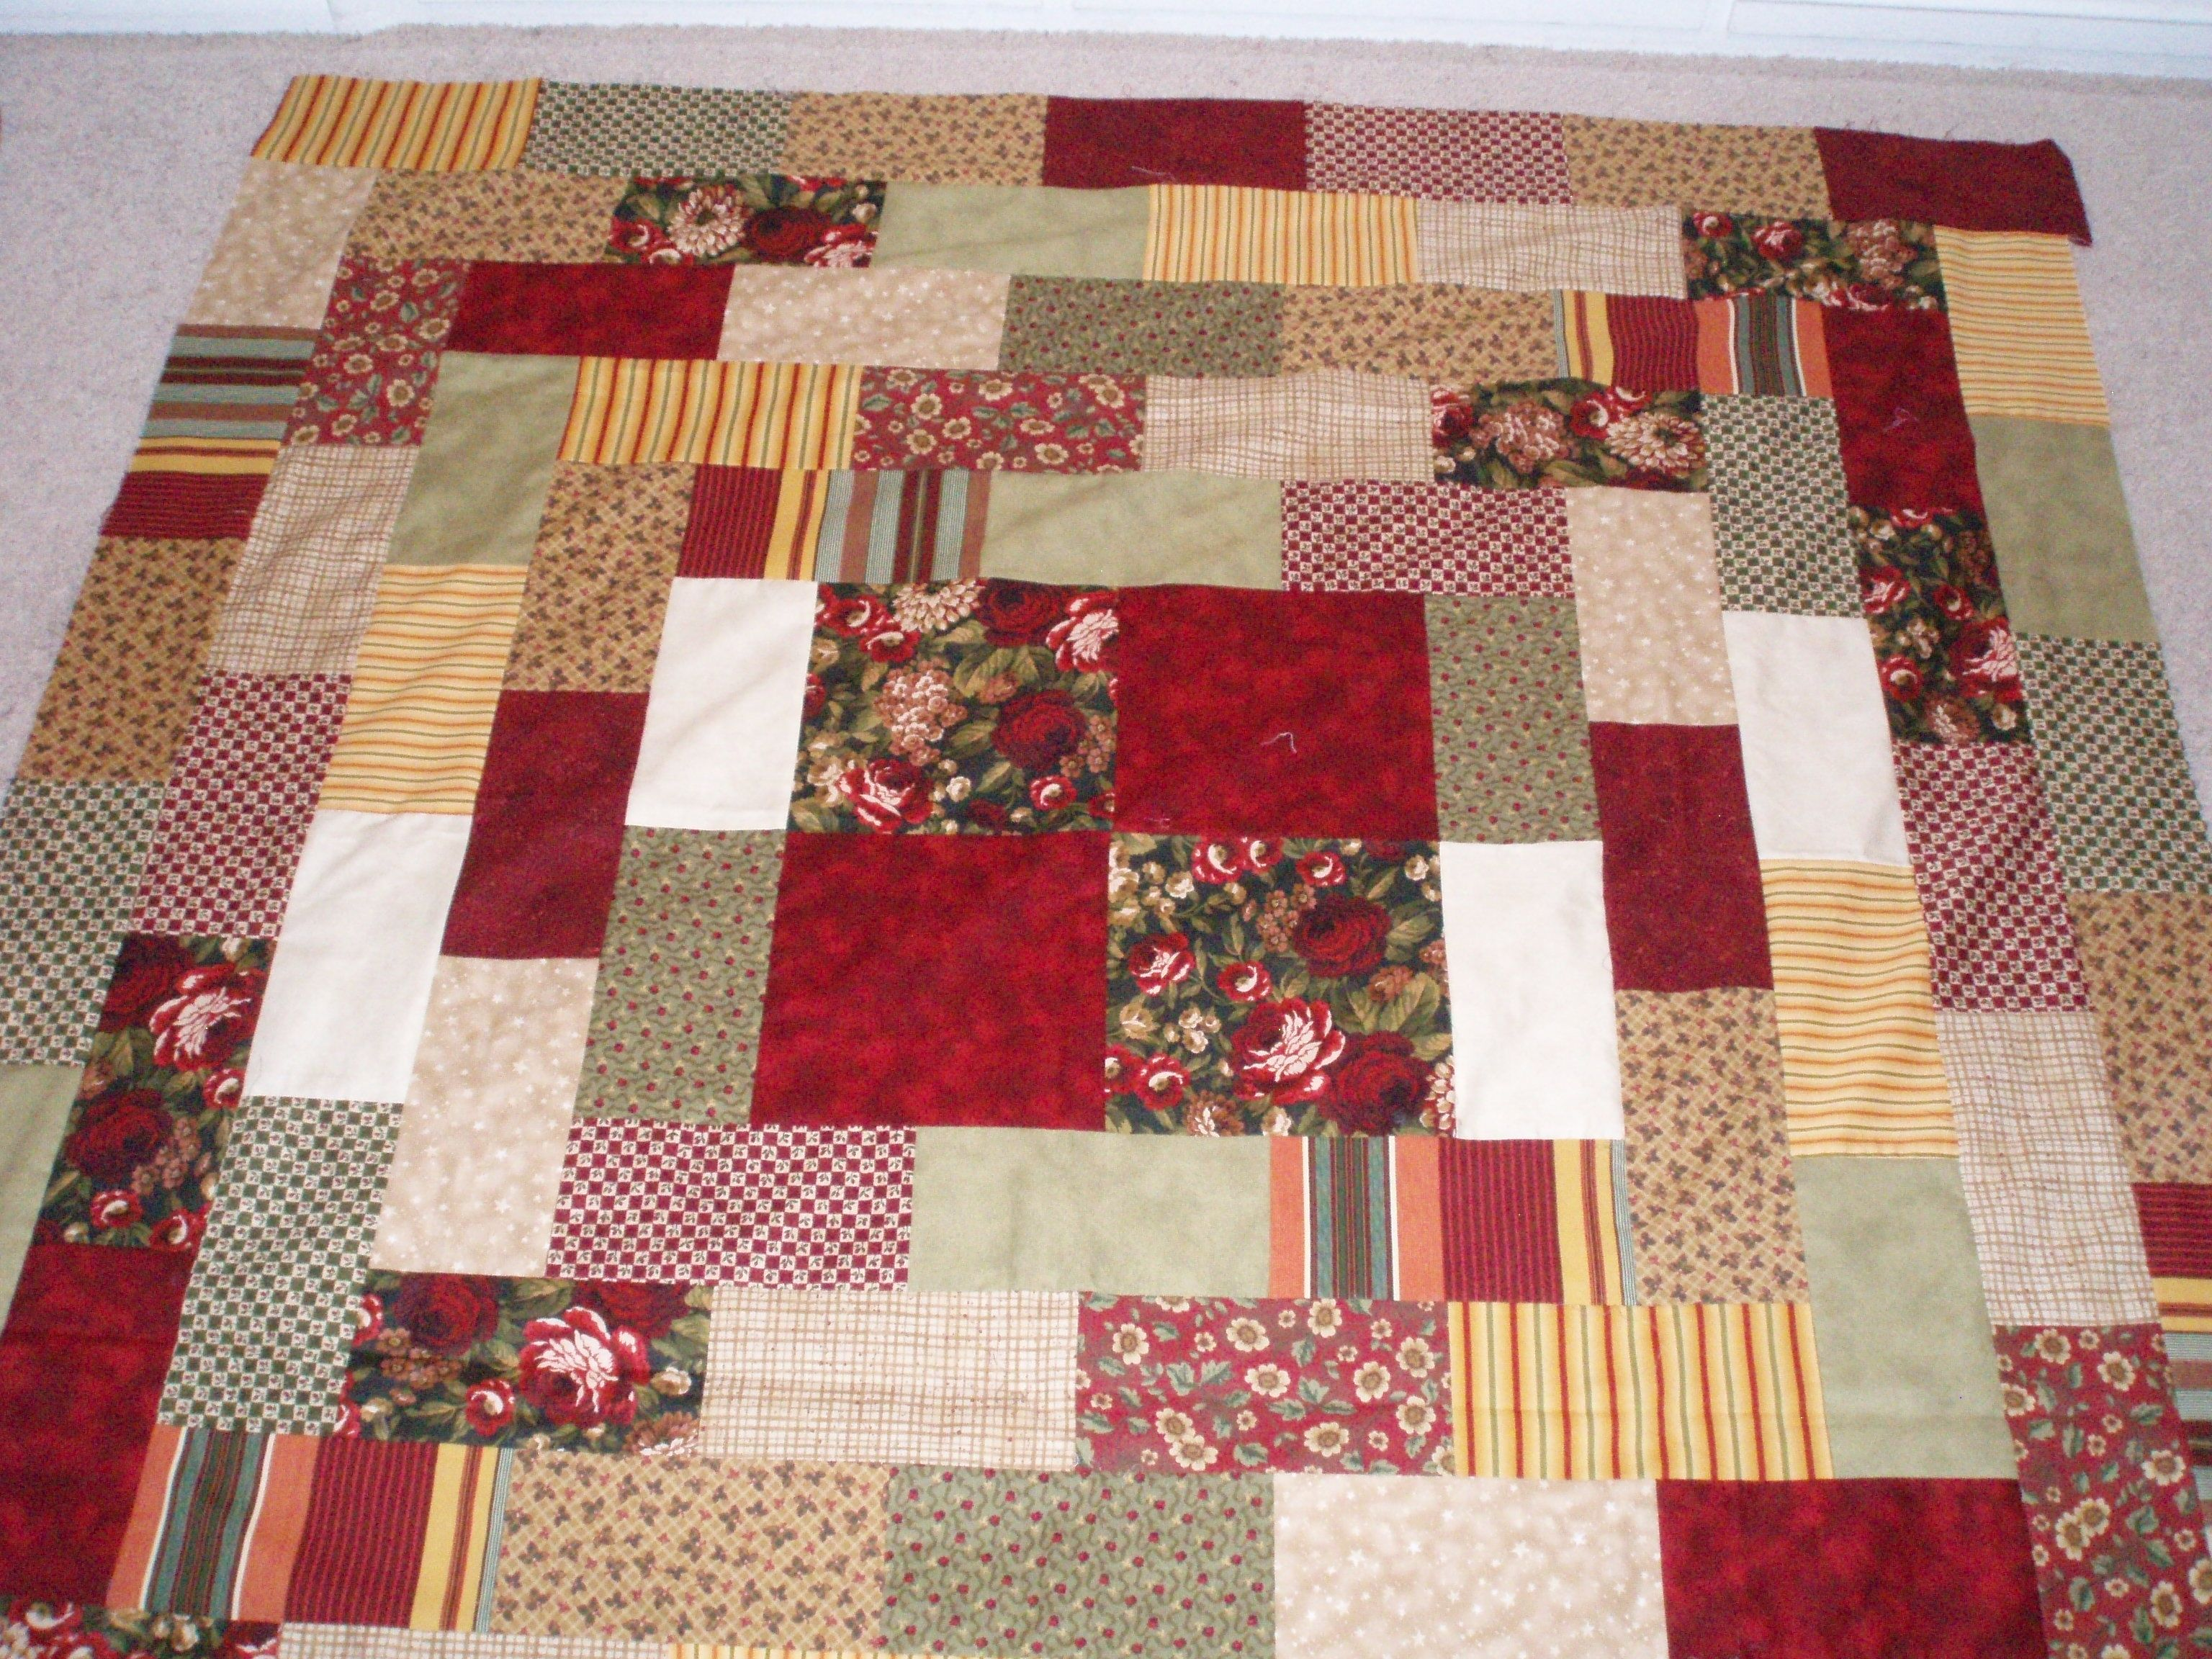 Quilt I made with Reds and Creams love the colors together!